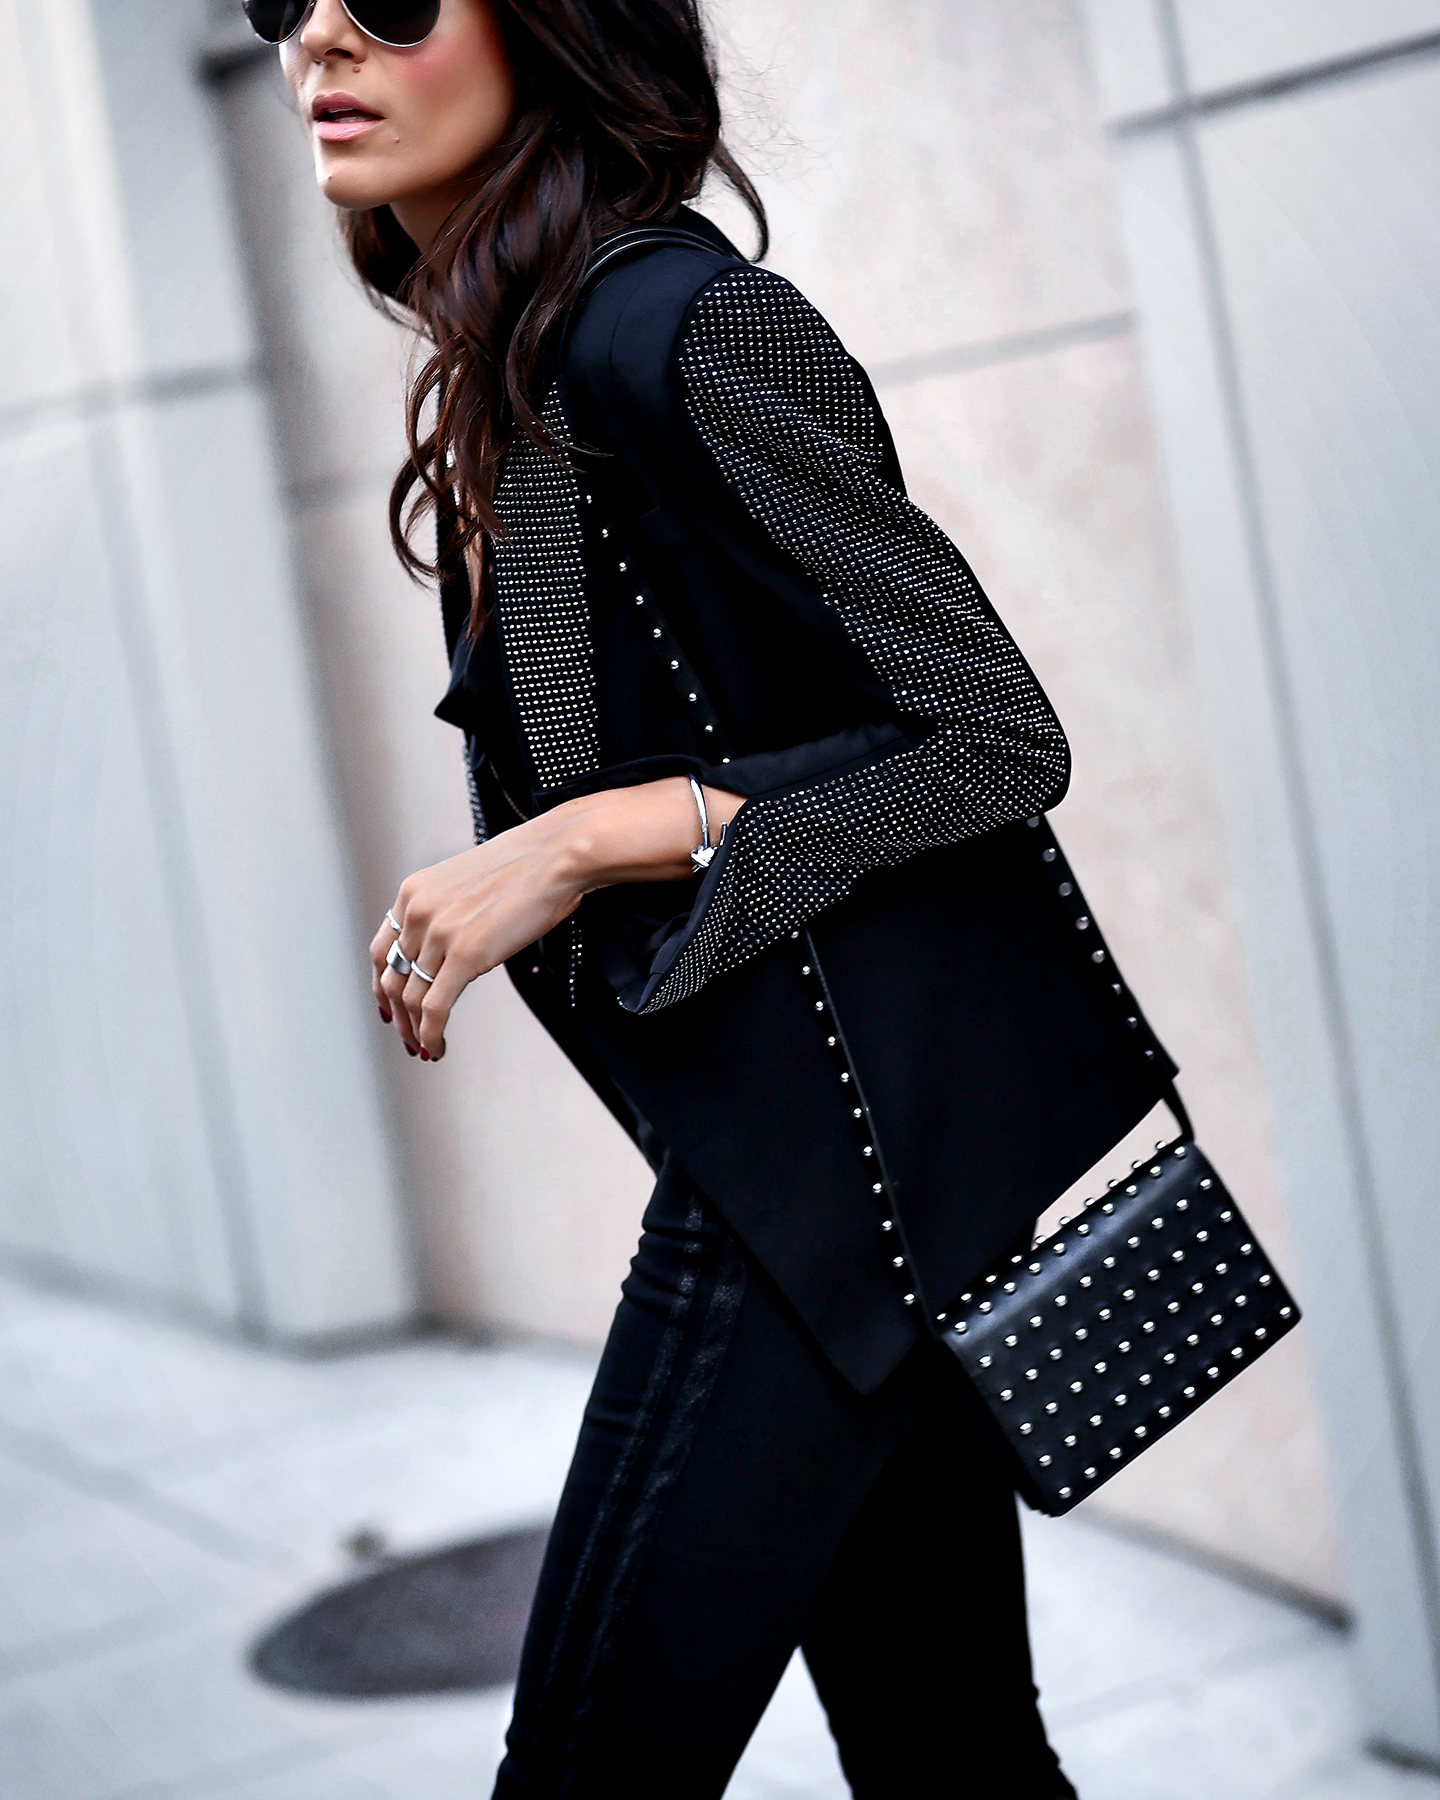 H&M Studded Blazer Holiday Alexander Wang Studded bagLook Silver jewelry.jpg